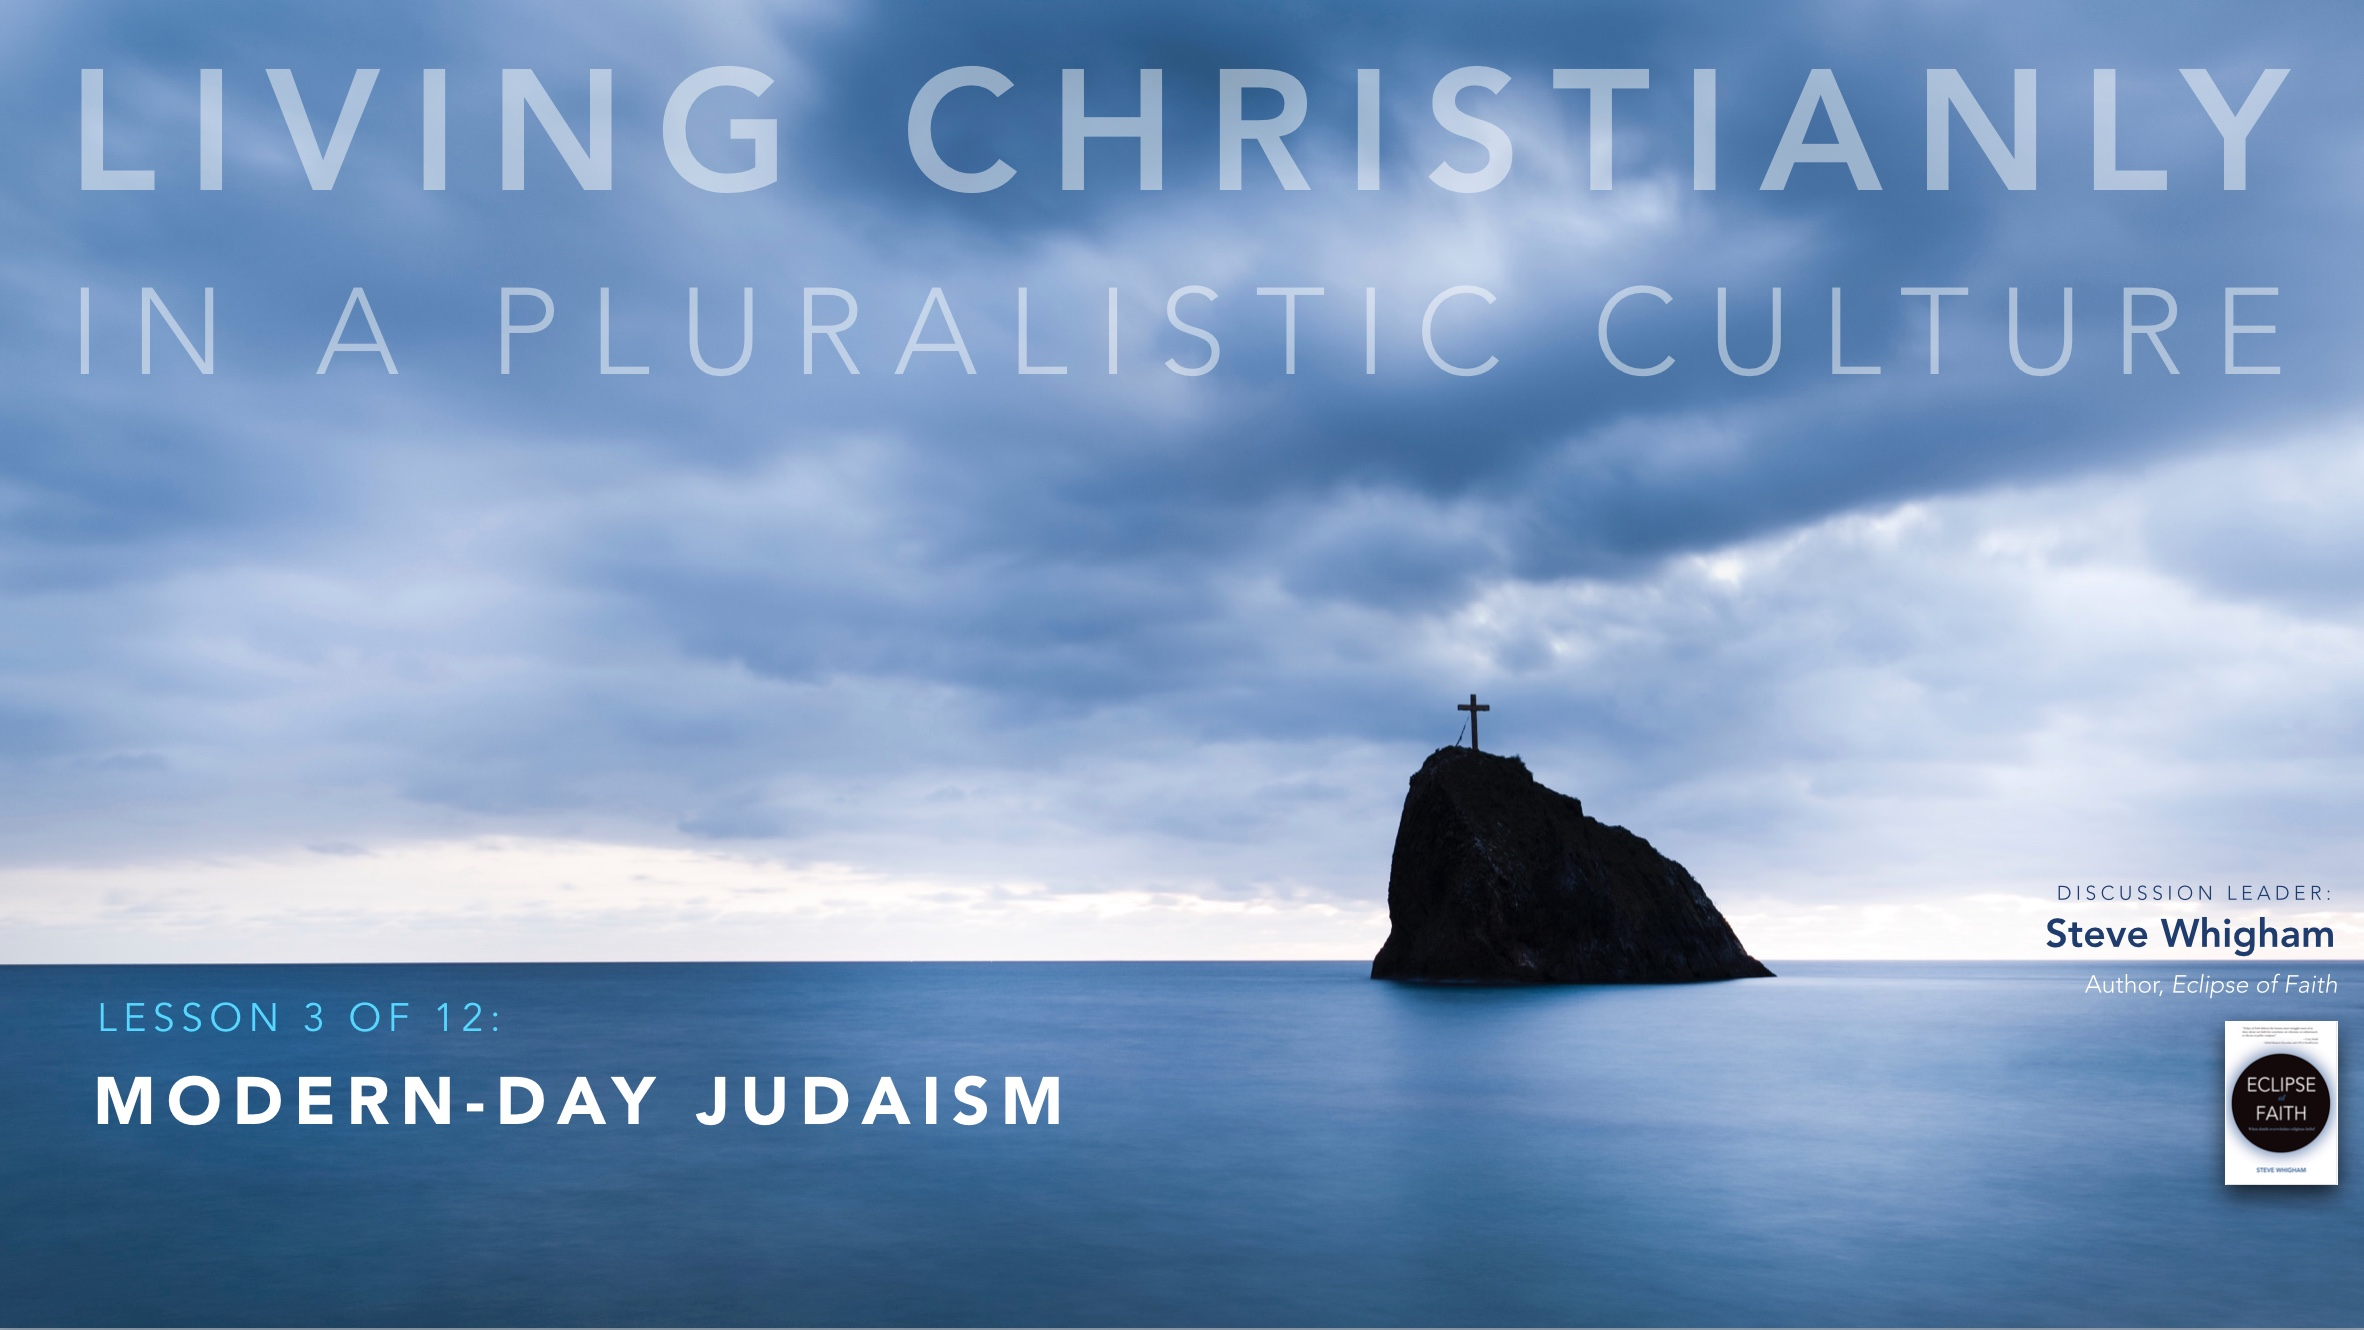 Living Christianly in a Pluralistic Culture Talk #3 Modern-Day Judaism